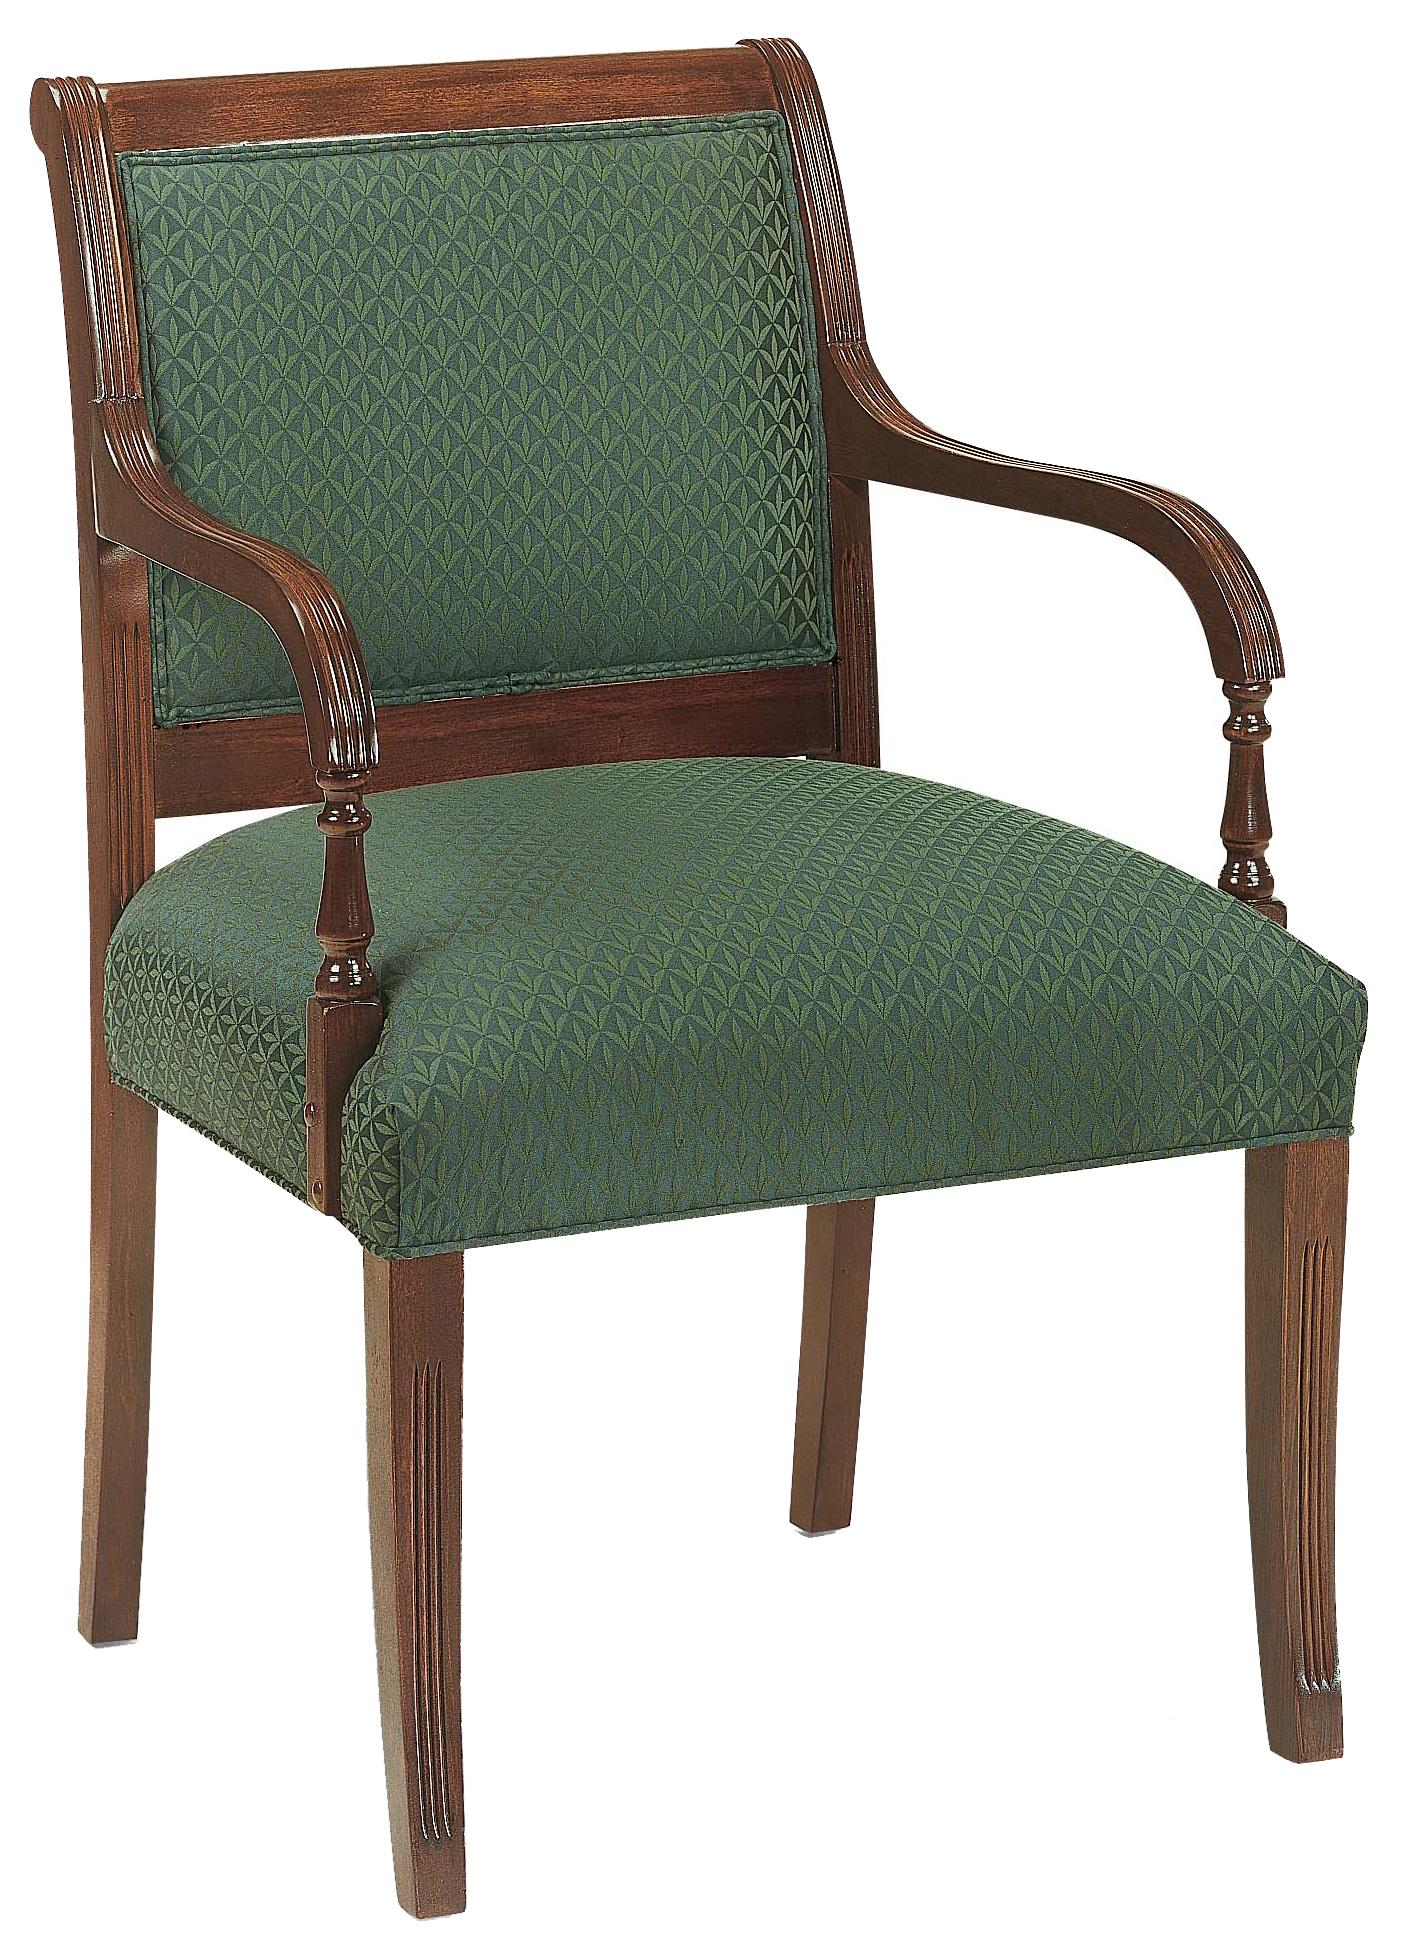 Fairfield Chairs Exposed Wood Chair - Item Number: 3514-01